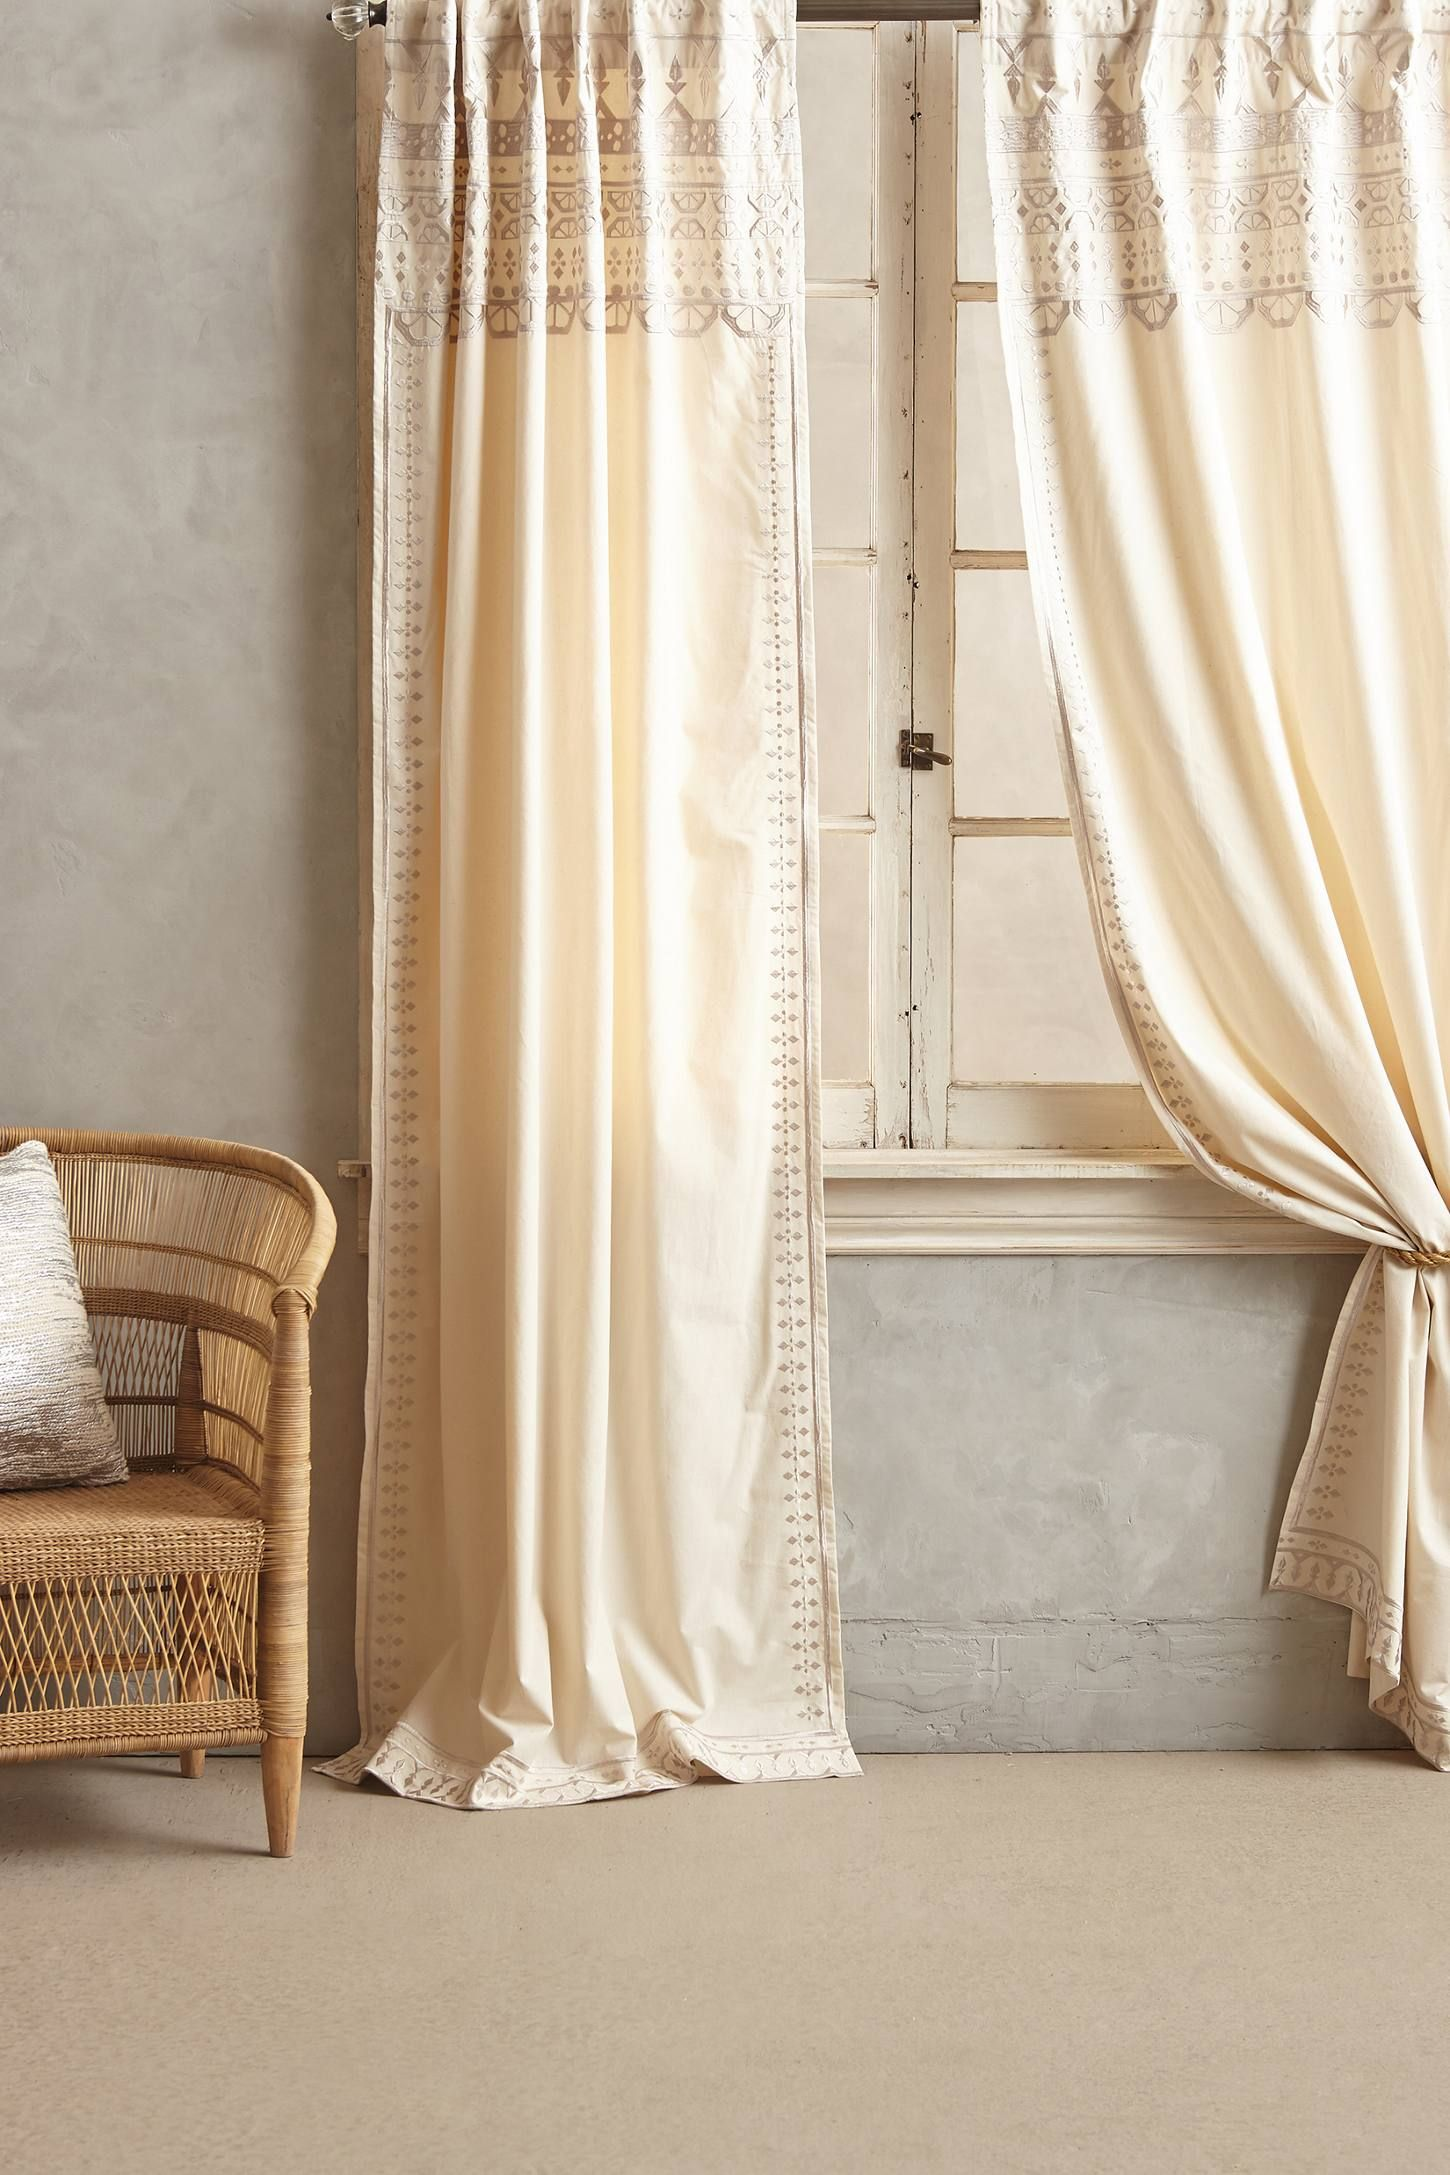 Etruscan finials anthropologie apartments and interiors